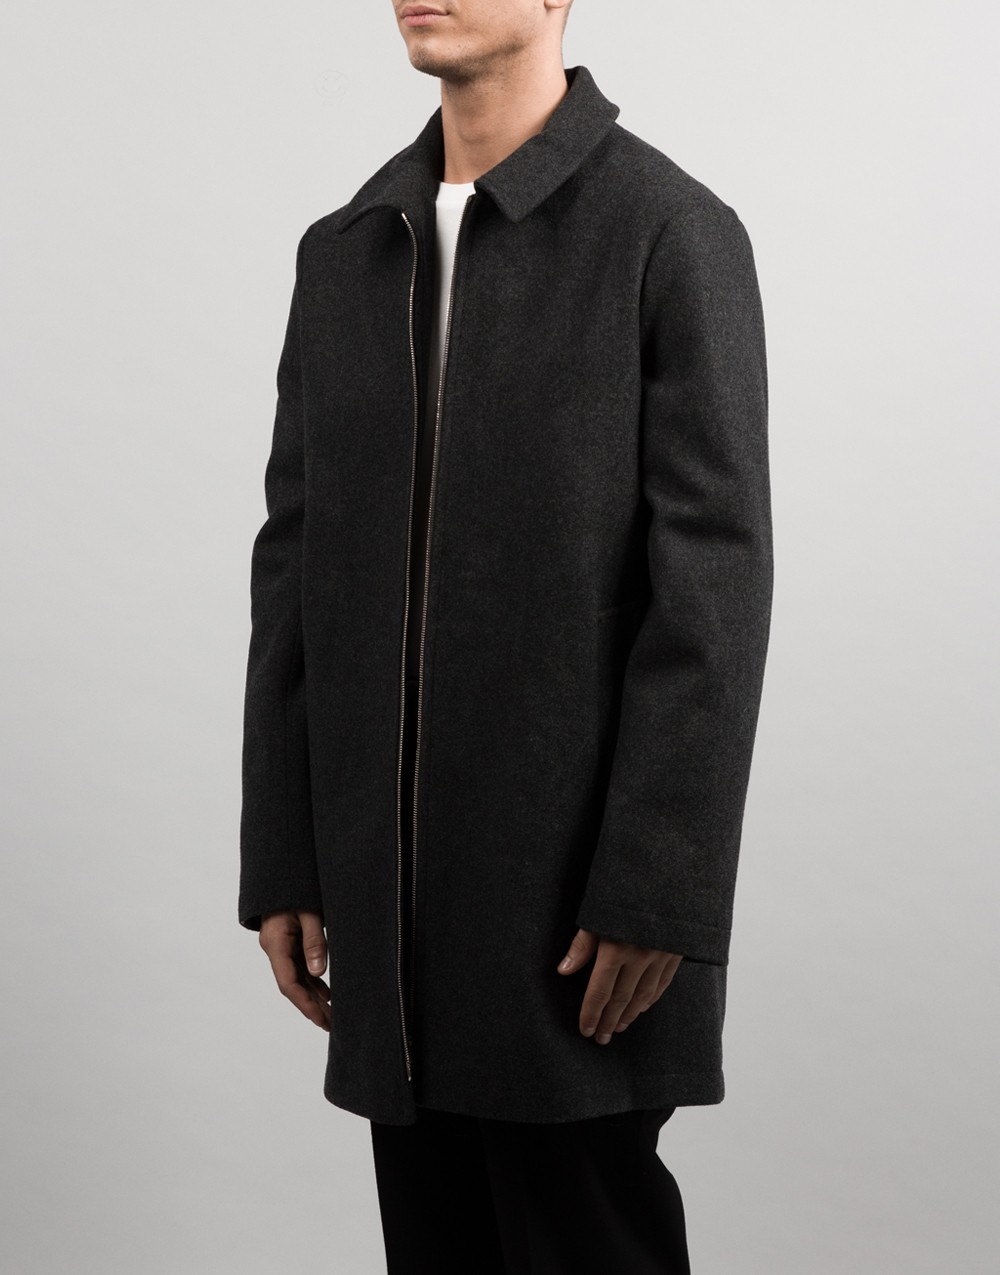 FoA. Boston Coat